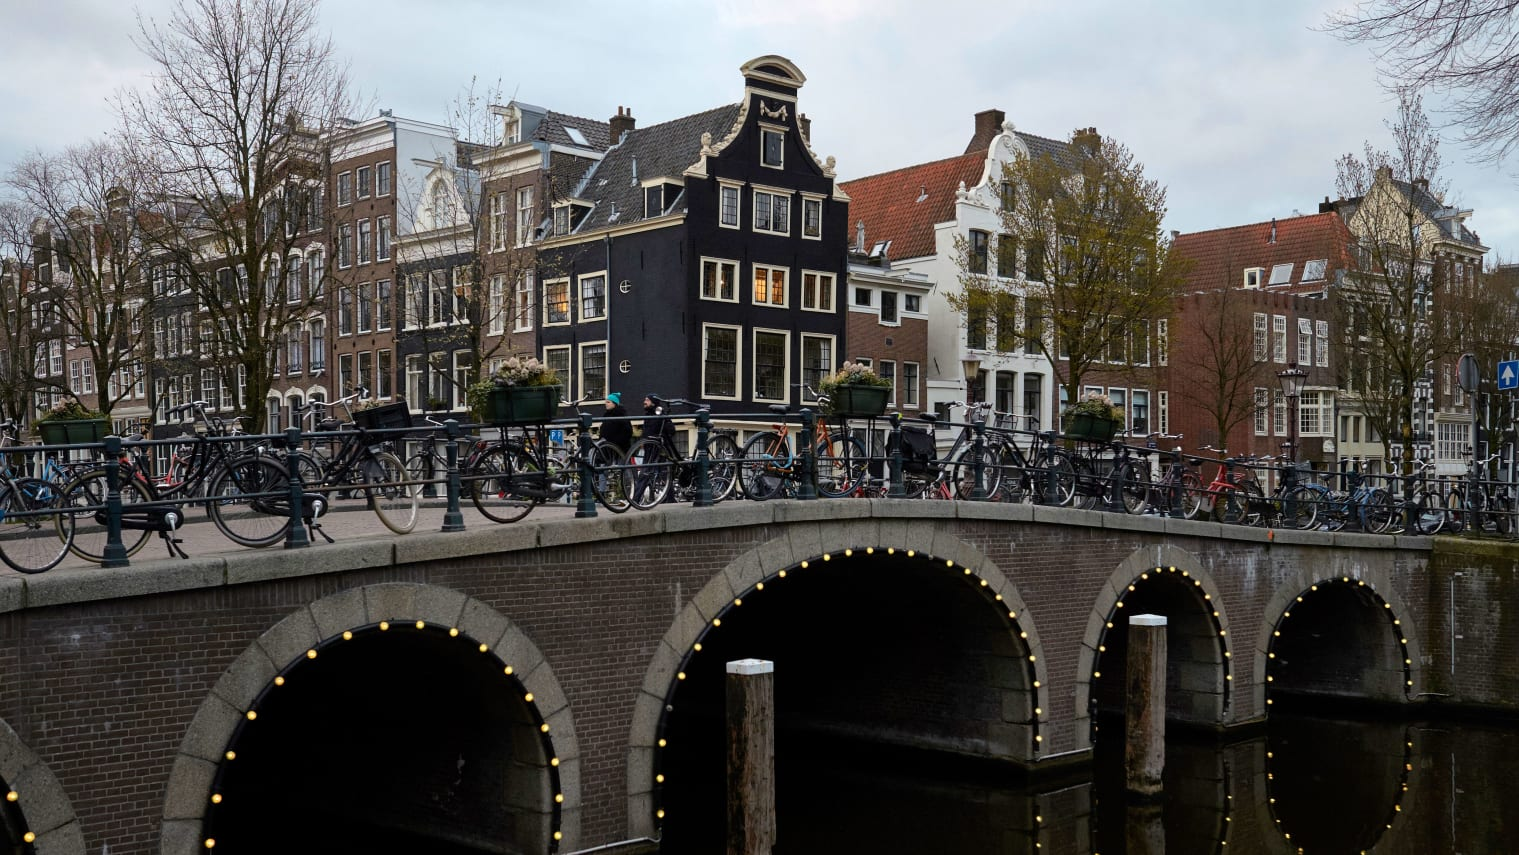 AMSTERDAM, NETHERLANDS - APRIL 1: A bridge is seen amid the coronavirus (COVID-19) pandemic on April 1, 2020 in Amsterdam, The Netherlands. The number of confirmed coronavirus (COVID-19) cases in The Netherlands has risen to at least 13614, with 1173 deaths according to reports from Dutch officials. (Photo by Pierre Crom/Getty Images)